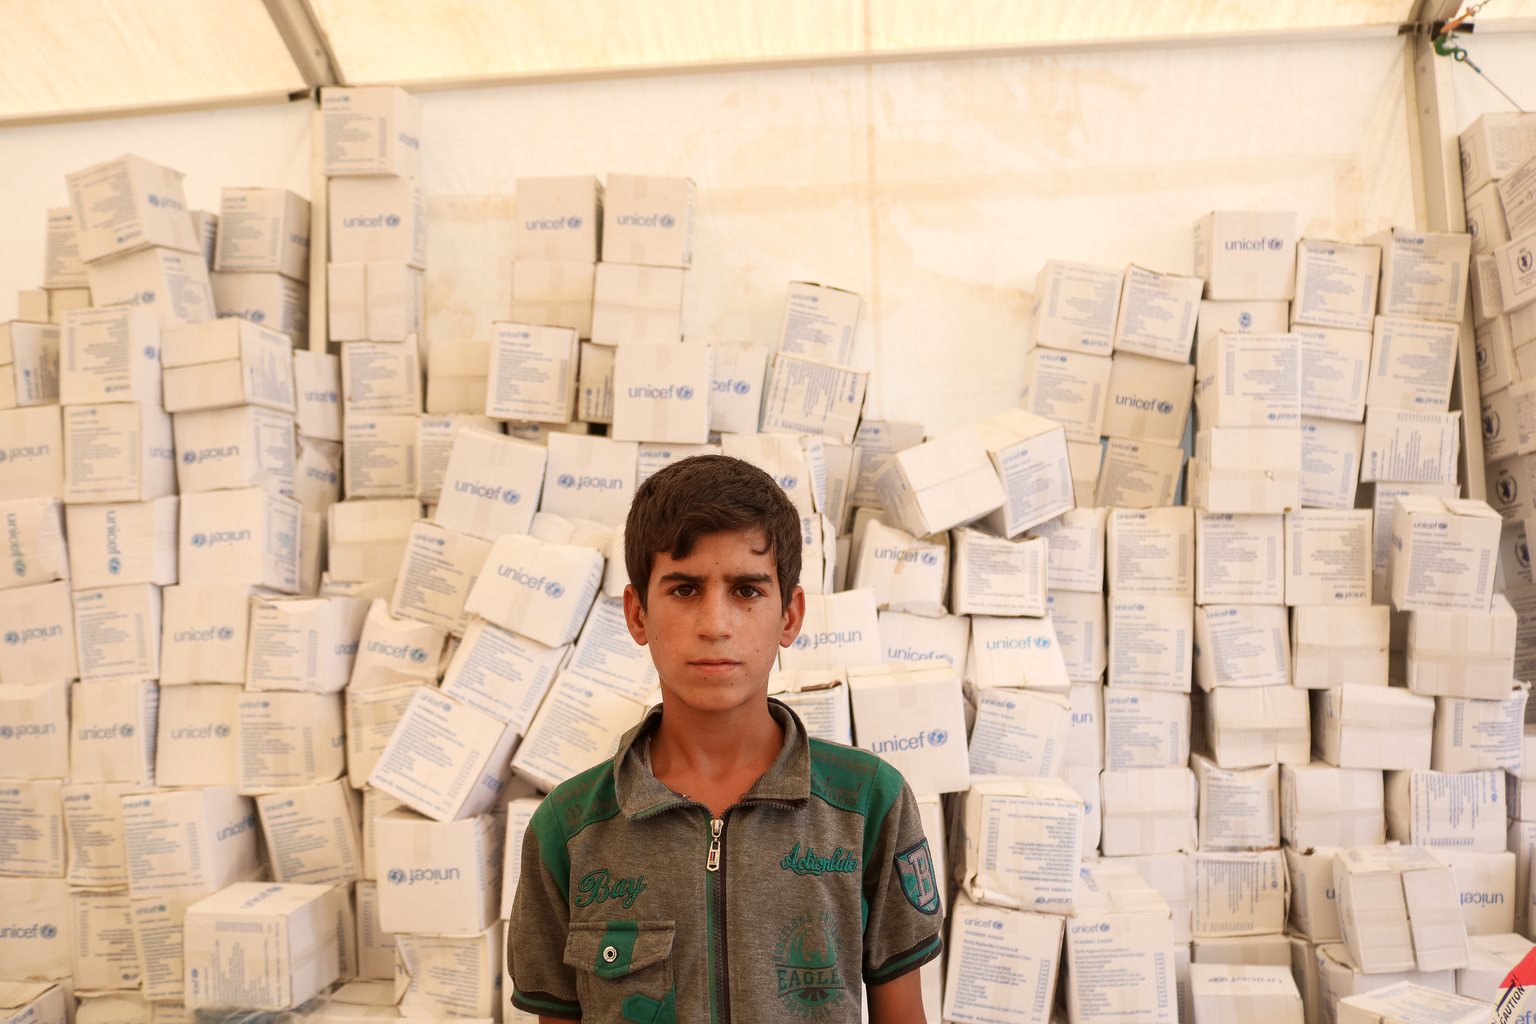 A boy in a green shirt stands in front of piled up boxes.